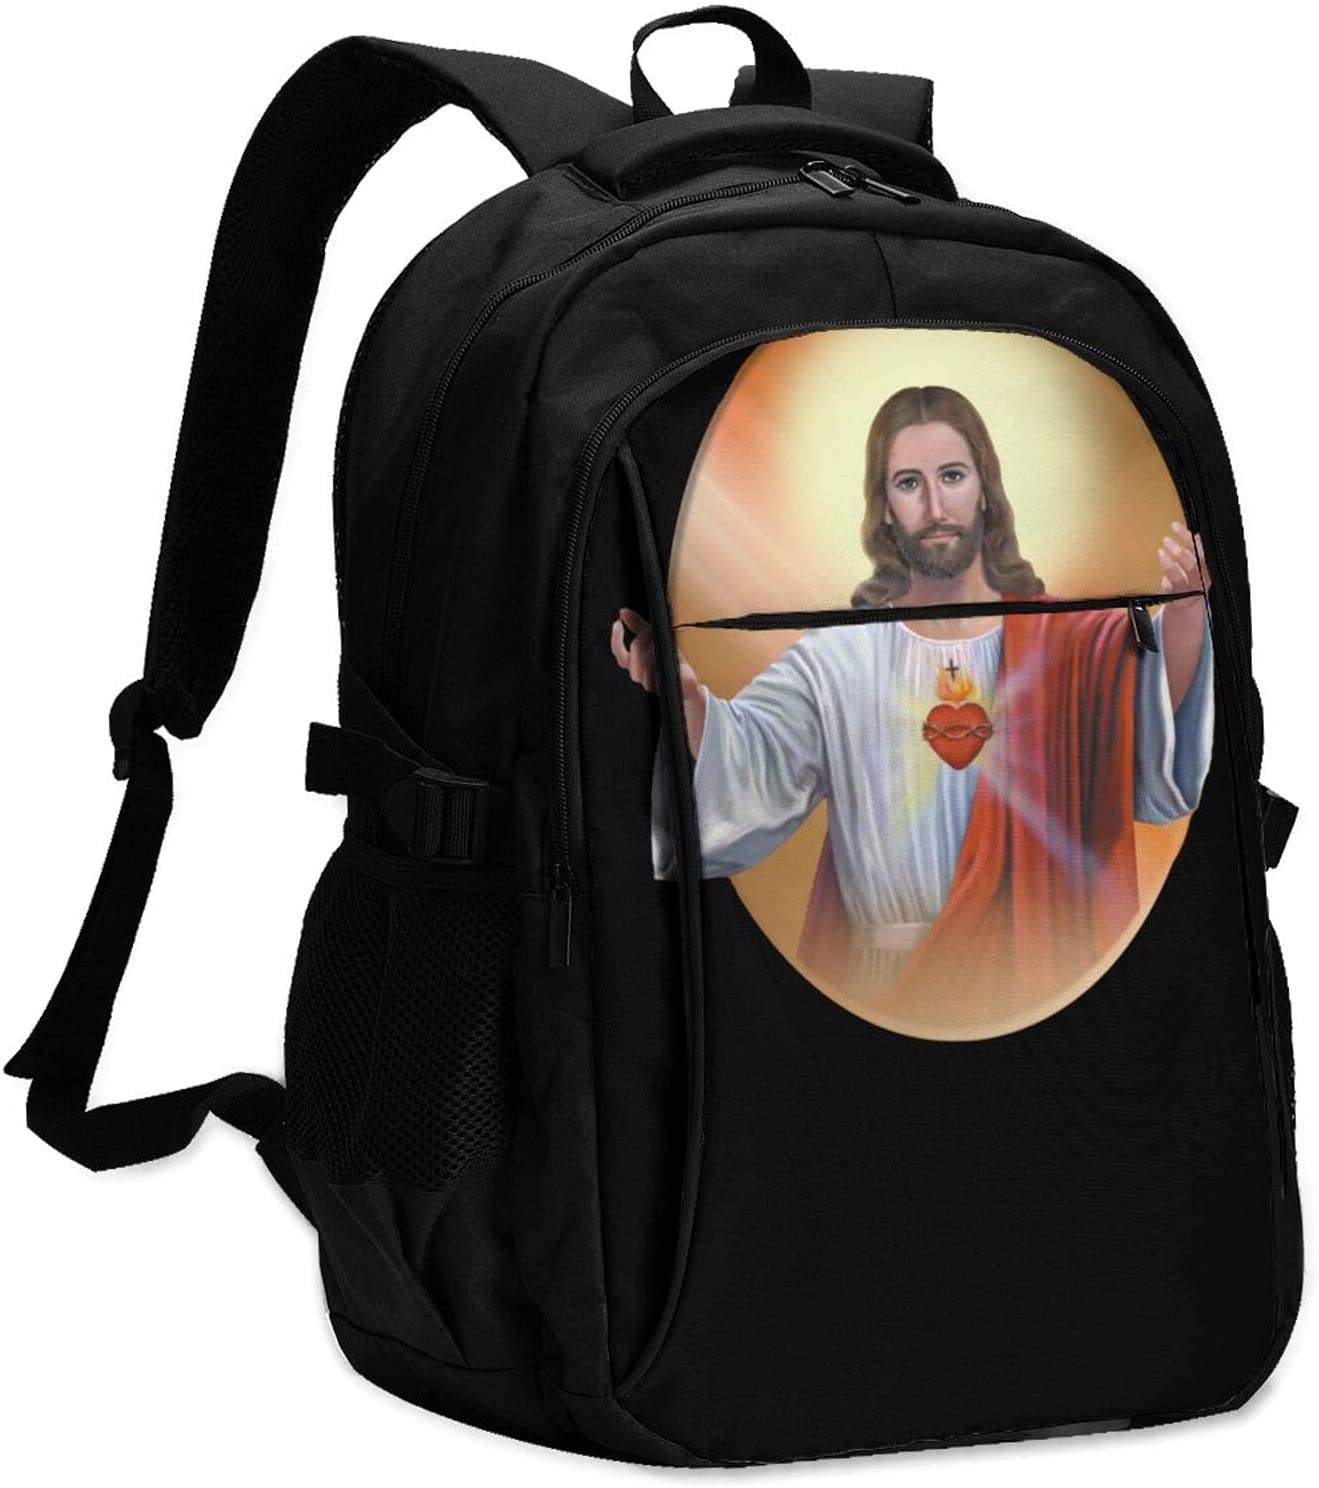 Sacred Baltimore Mall Heart Of Jesus Pictures Backpack School With Char Bag Usb Superlatite